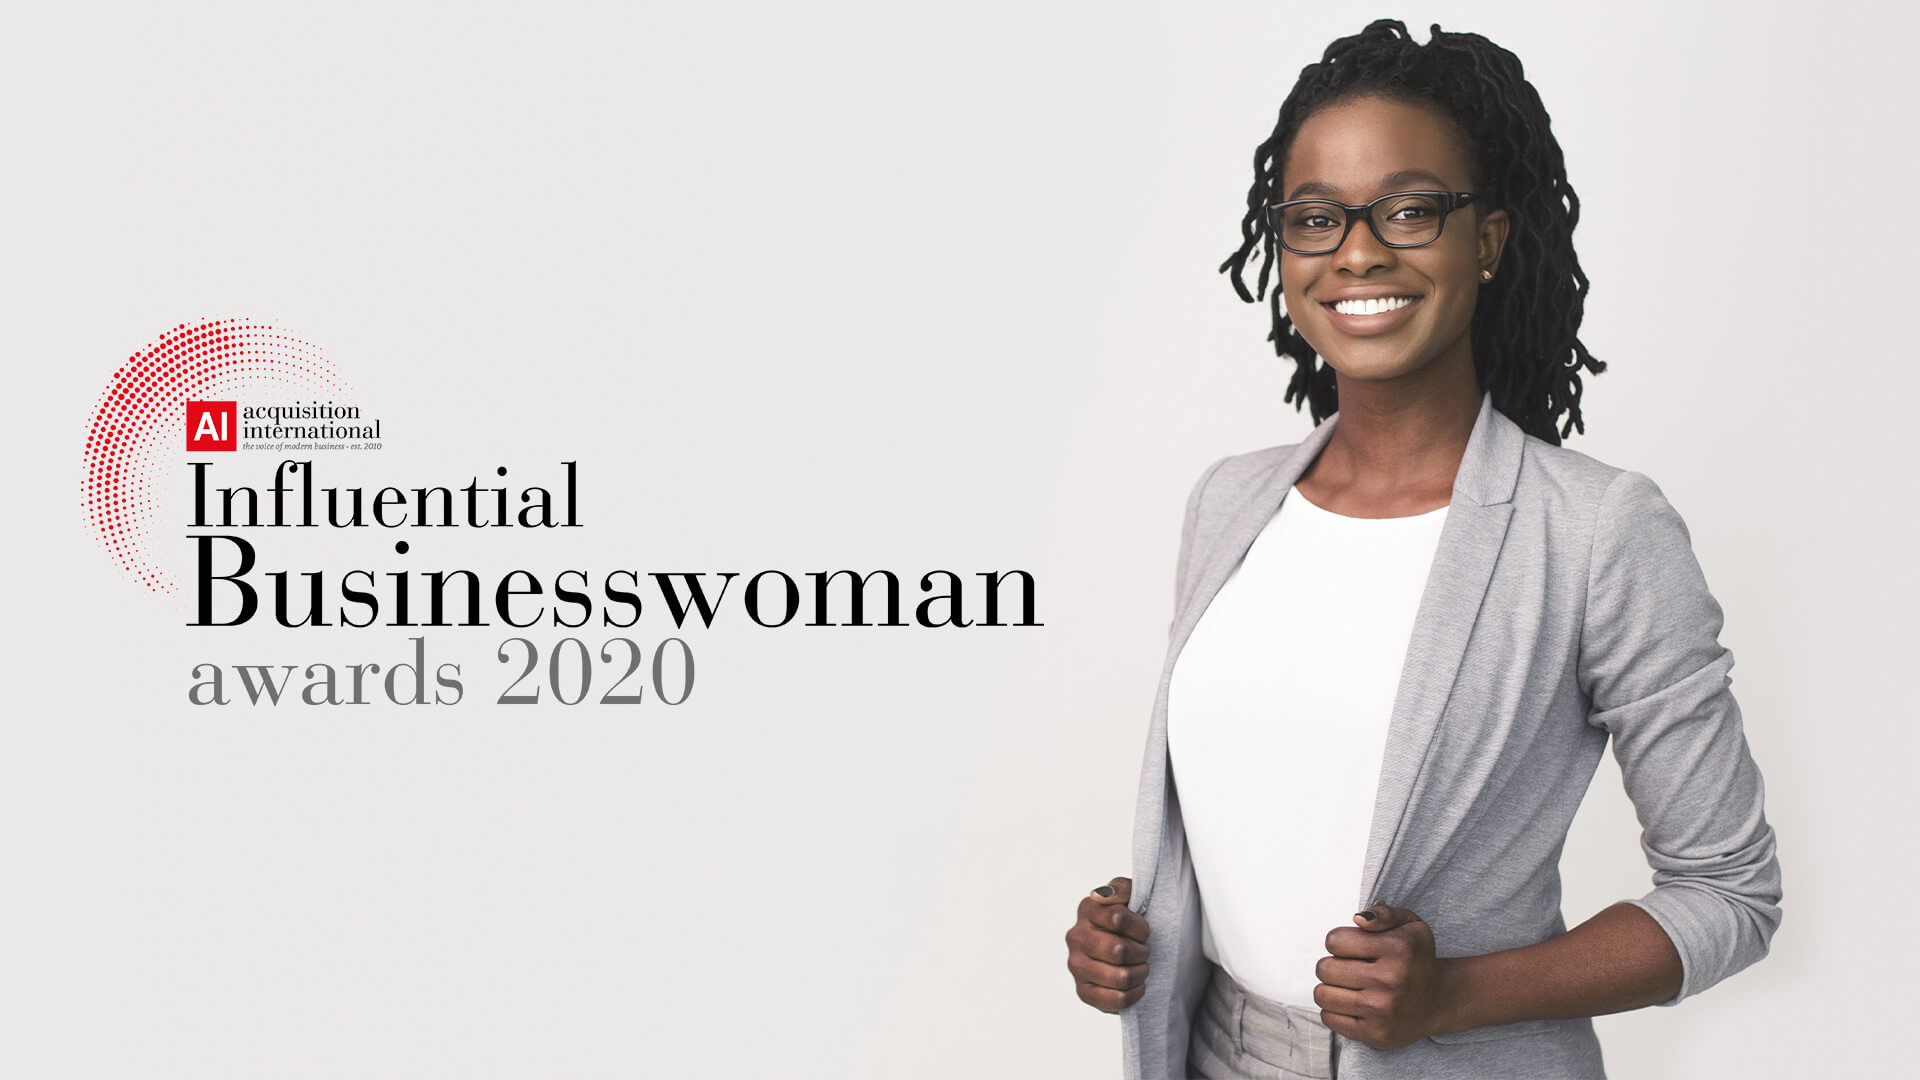 Acquisition International is Proud to Announce the Winners of the 2020 Influential Businesswoman Awards